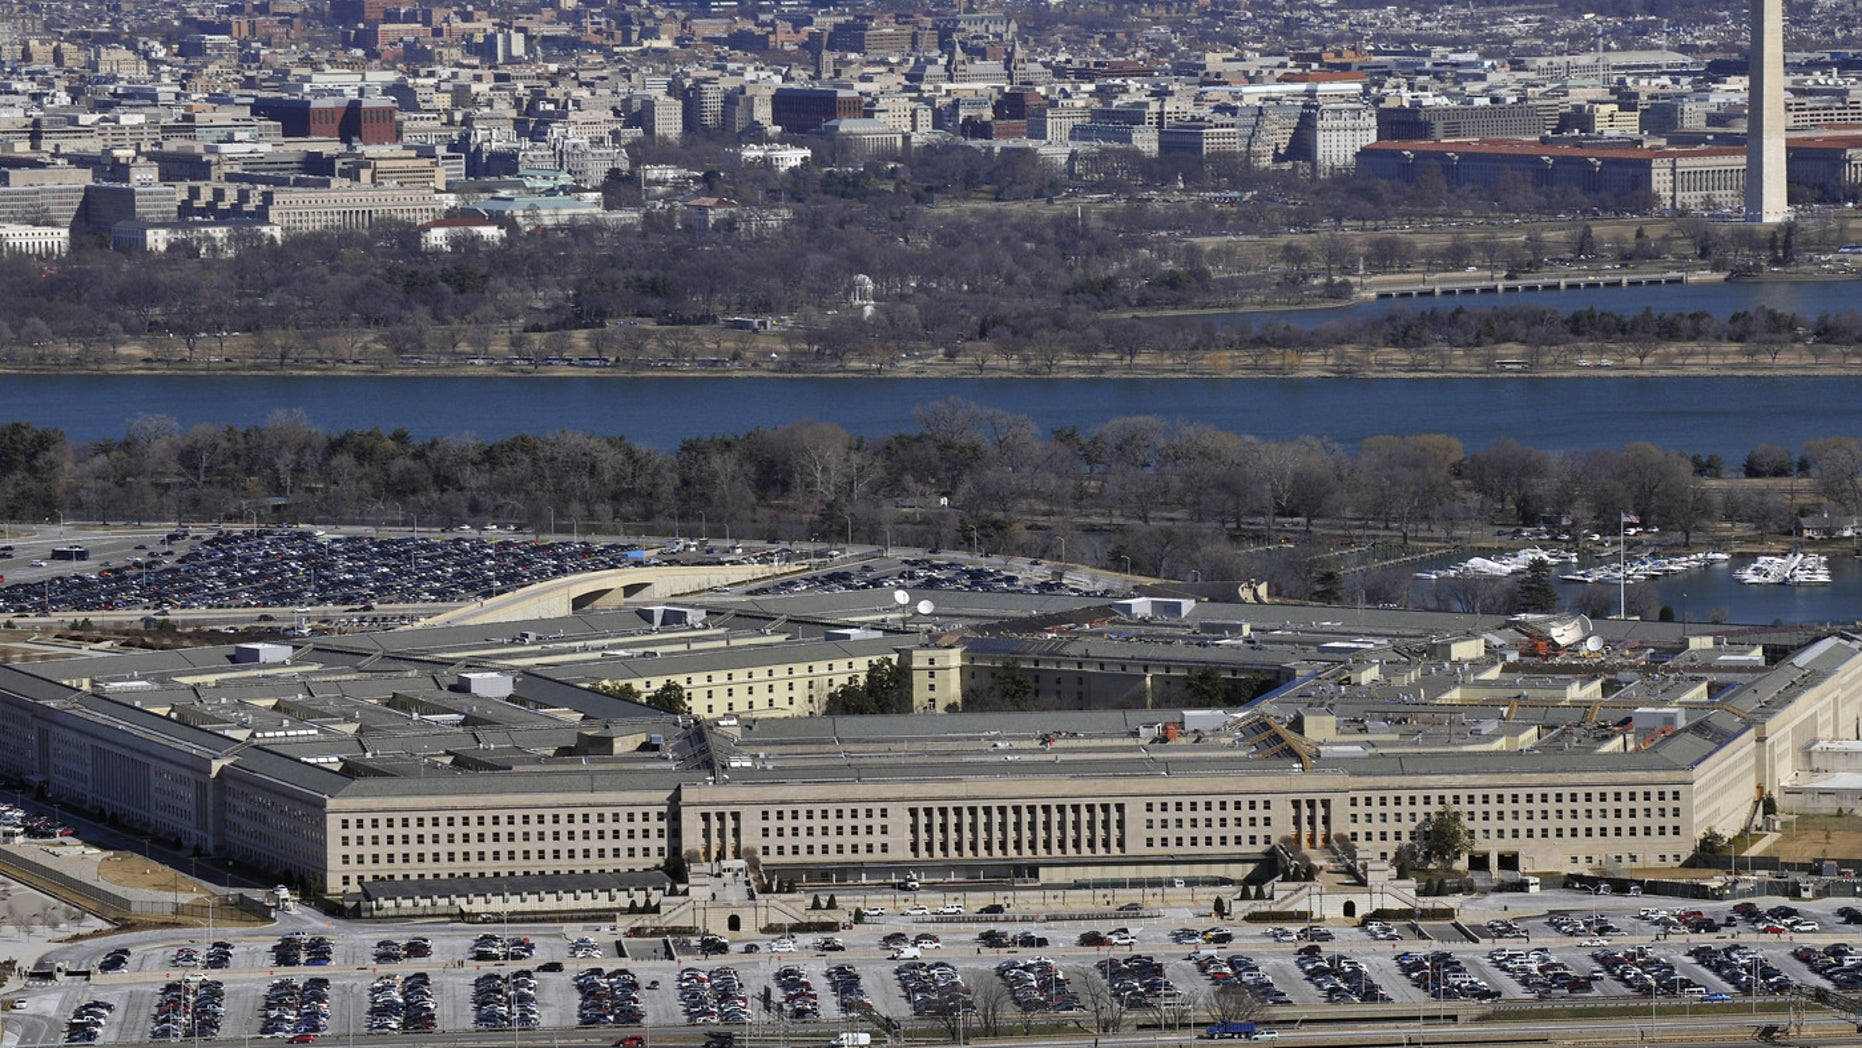 Image of the Pentagon by Senior Airman Perry Aston